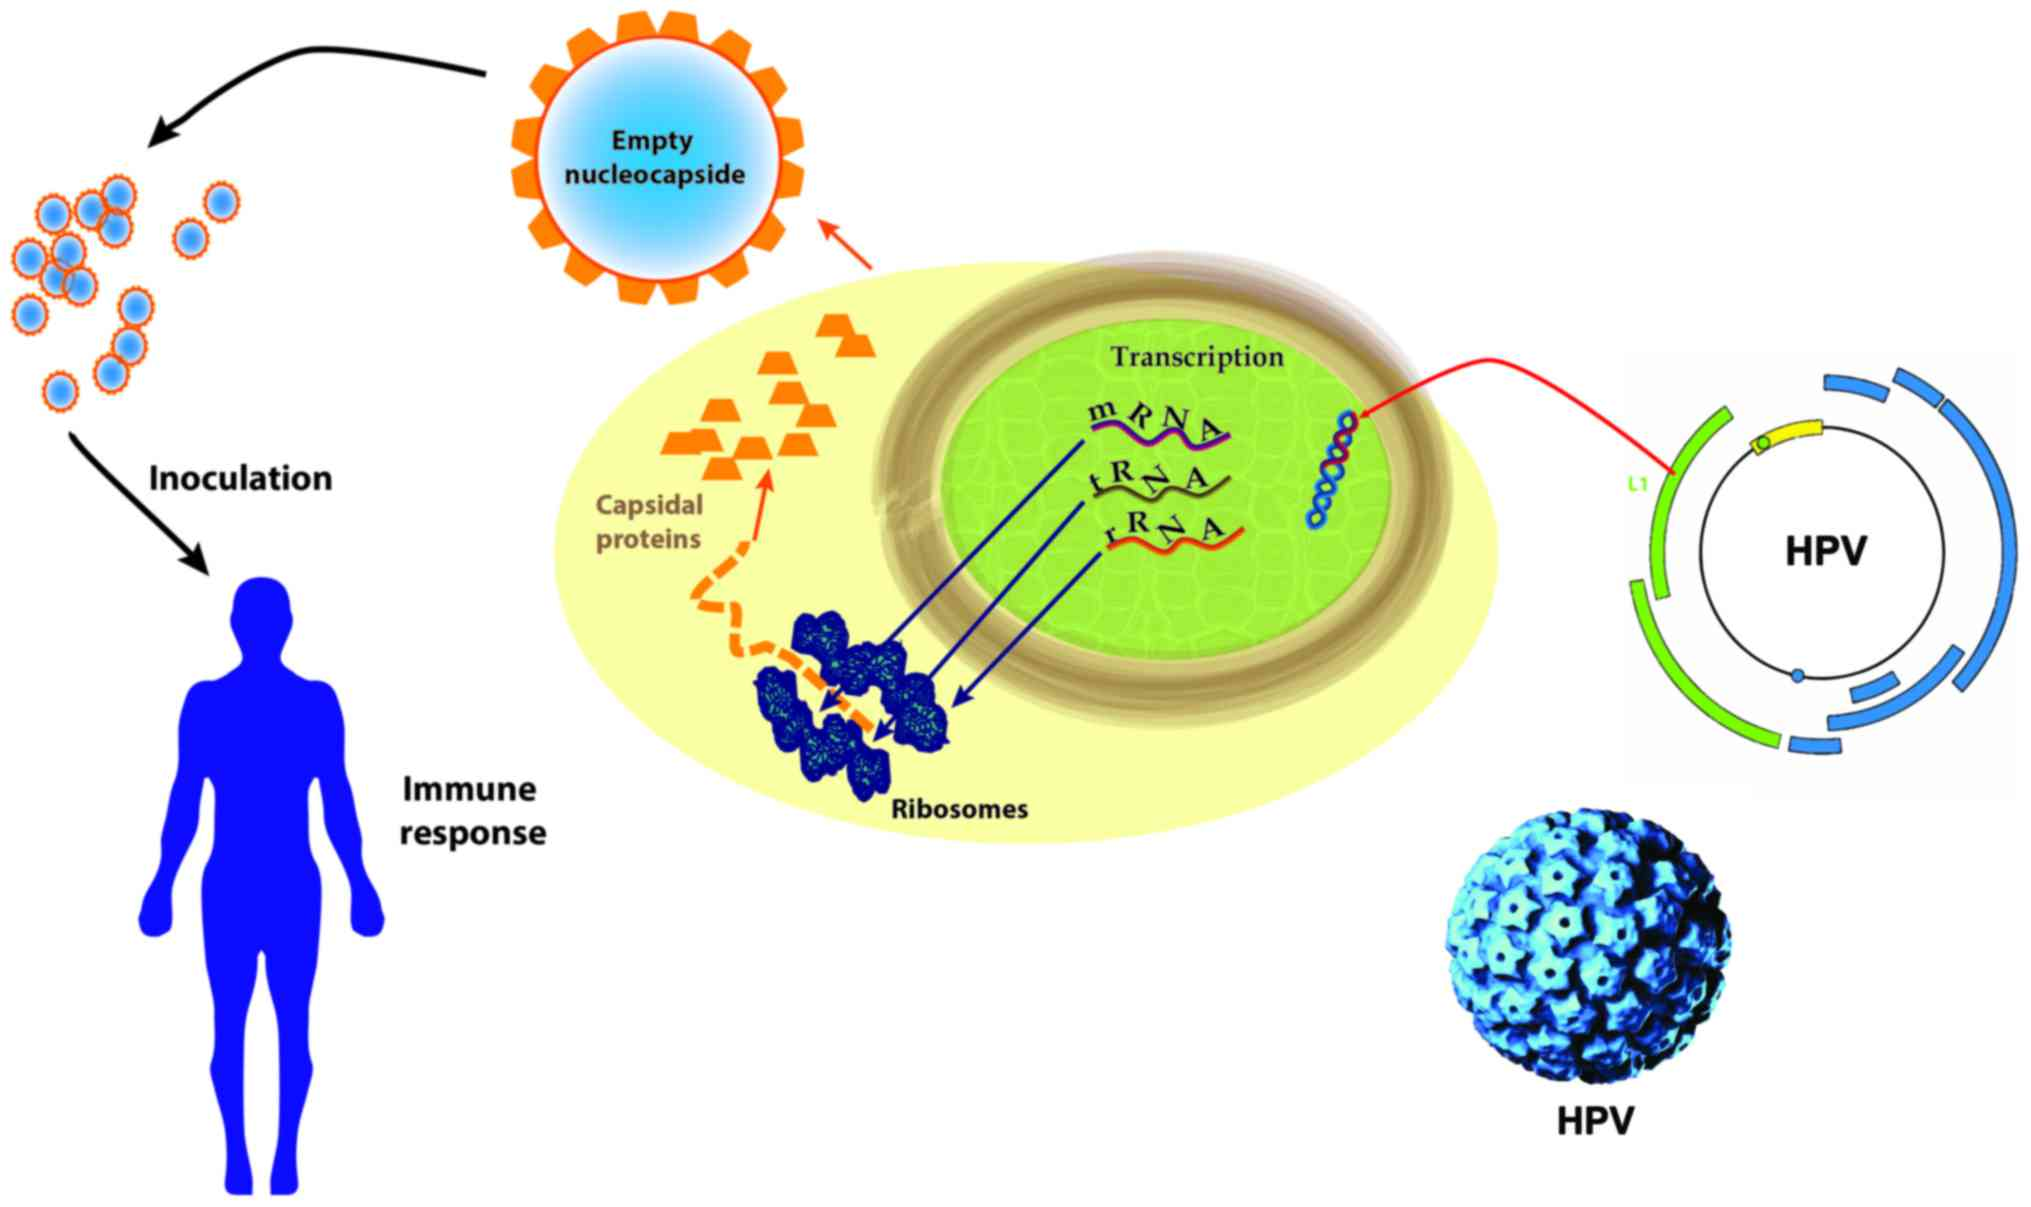 hpv virus and transmission